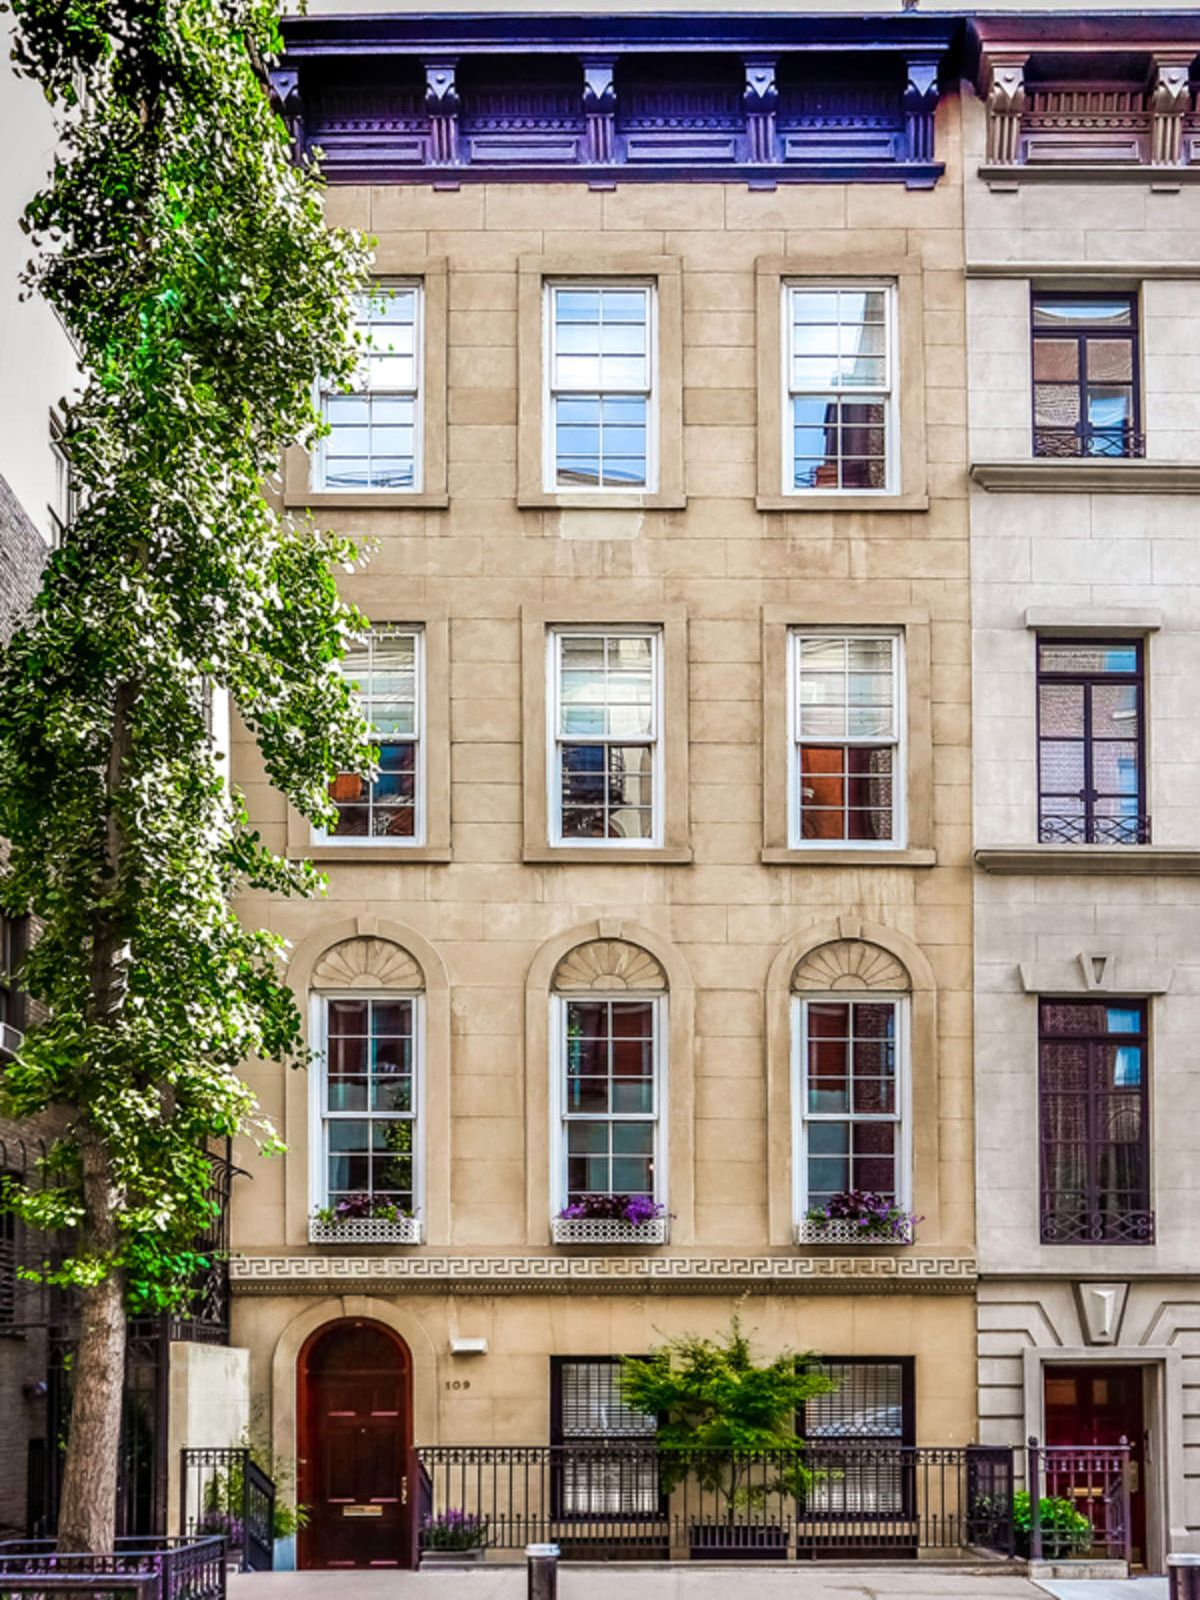 109 East 81st Street, New York NY Townhouse - New York City Real Estate